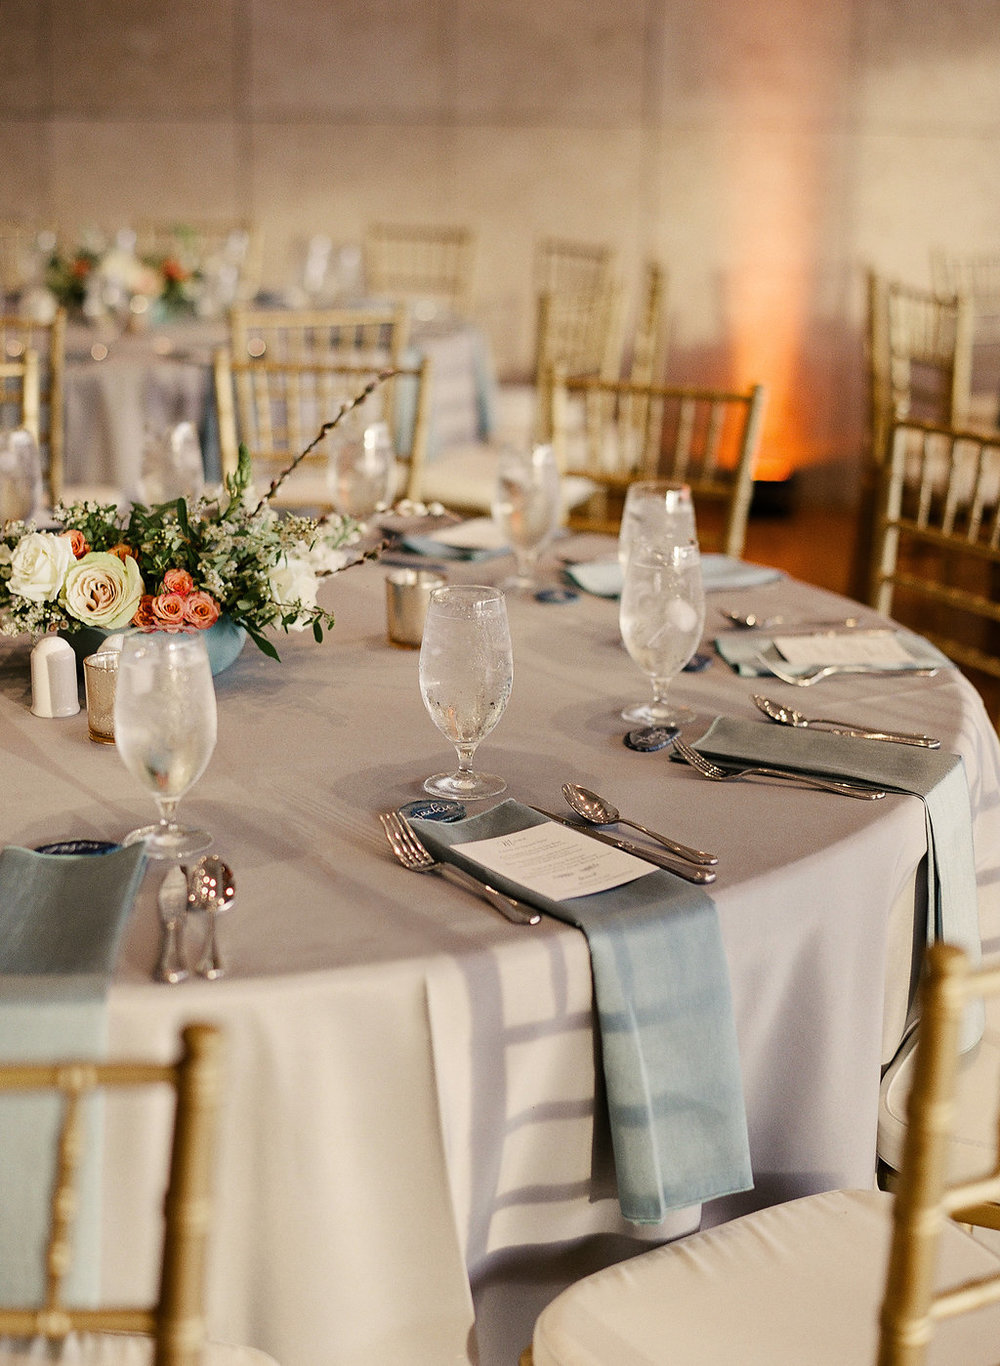 Modern wedding table with grey linen, french blue napkin and colorful floral centerpiece